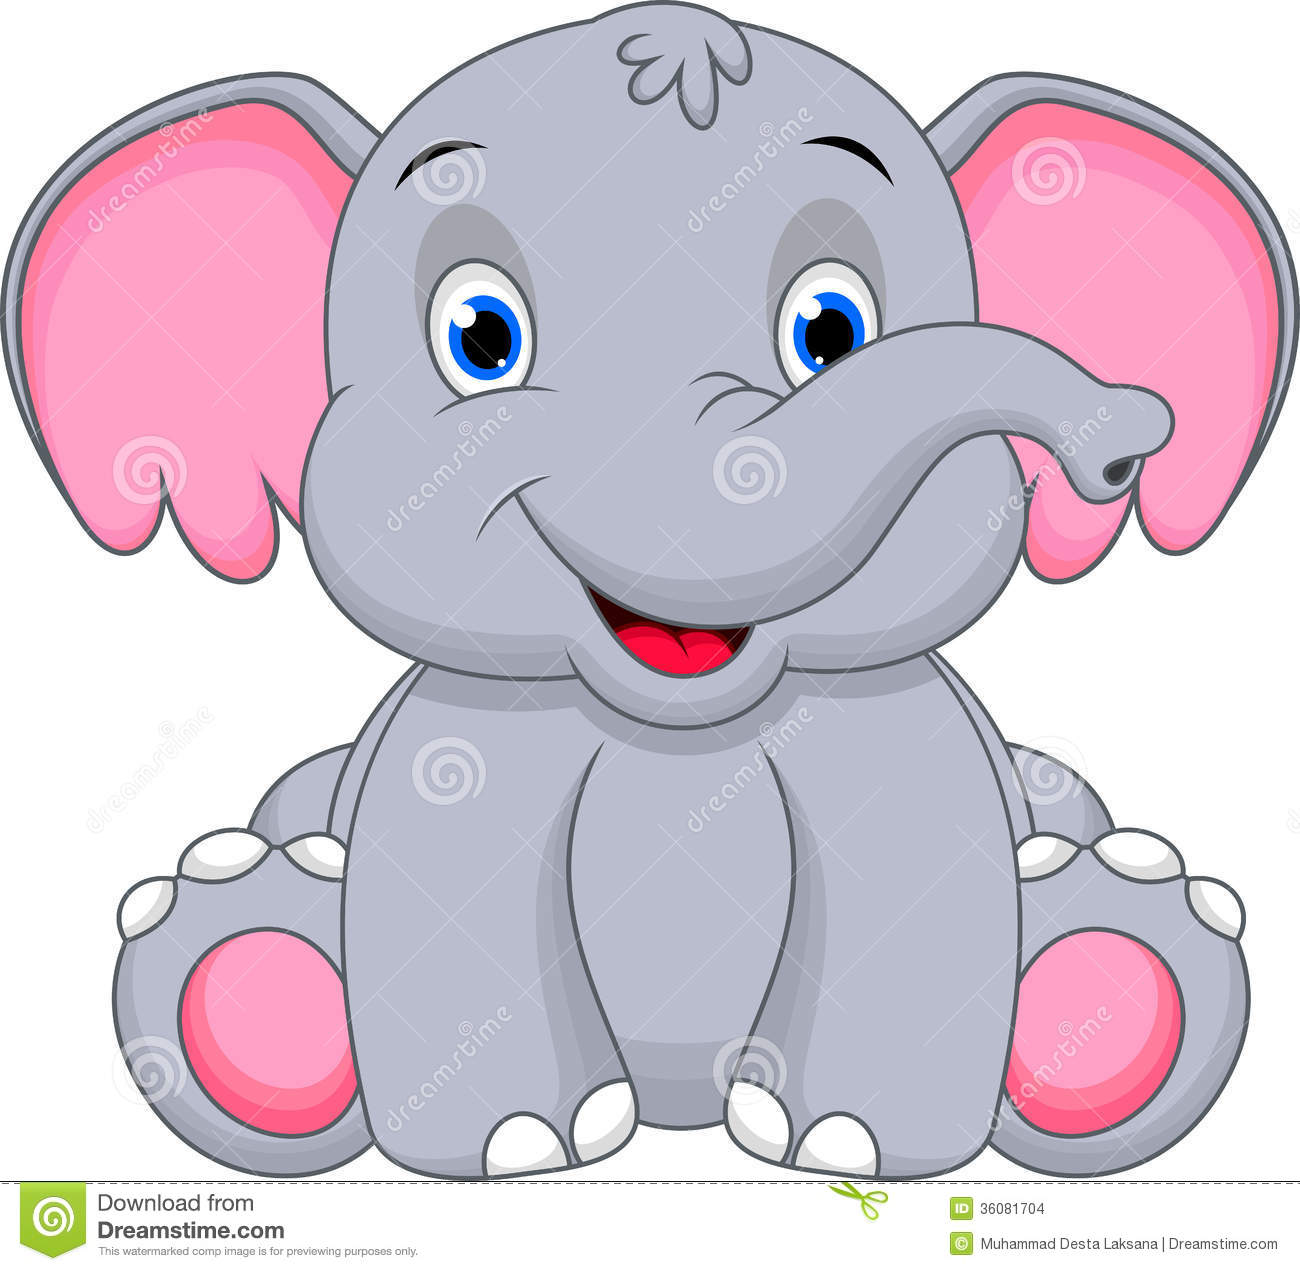 Affen moreover Baby Giraffe Clipart furthermore Stock Images Cute Baby Elephant Cartoon Fat Little Sitting Smiling Image36081704 together with Happy Tuesday likewise Baby Minnie Mouse   Wallpaper 1. on fat giraffe clip art